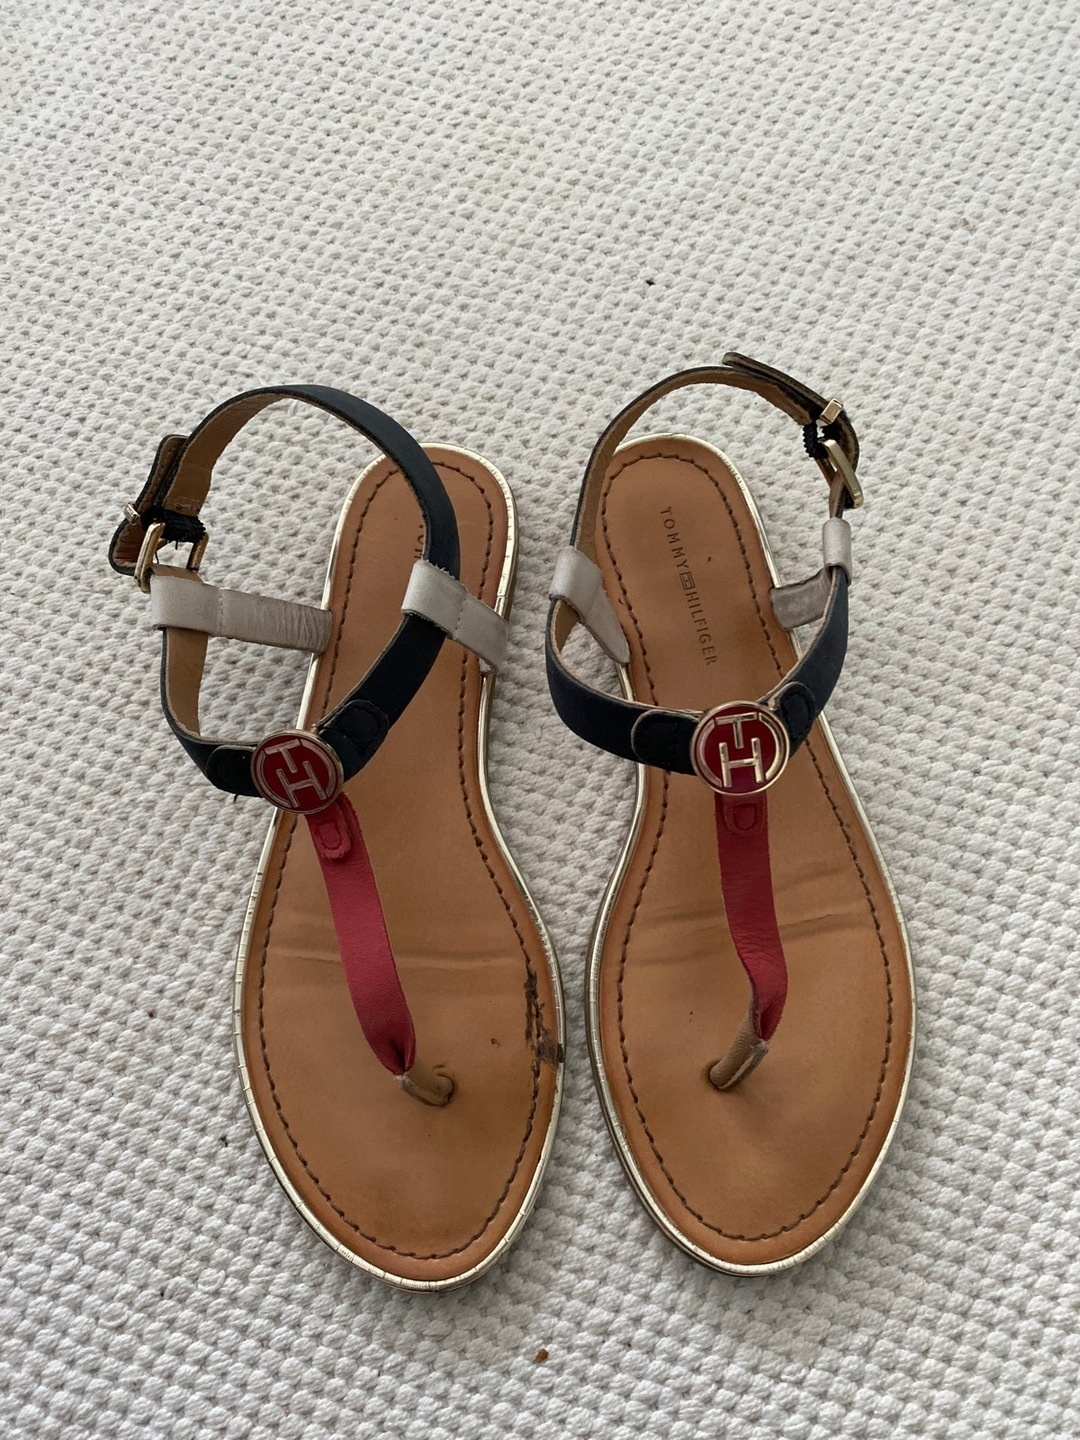 Women's sandals & slippers - TOMMY HILFIGER photo 1